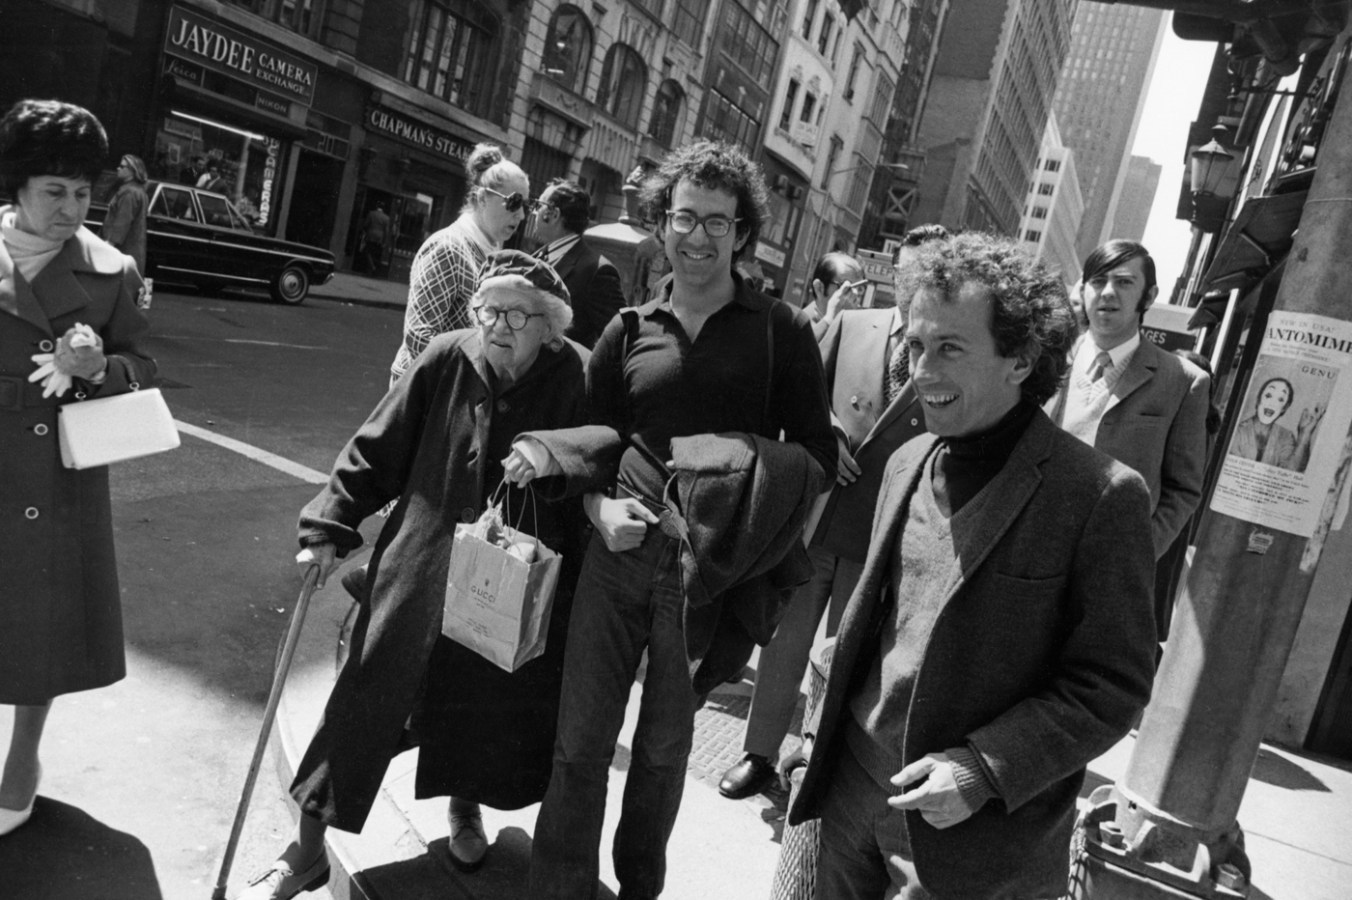 Black-and-white photograph of two smiling men with curly hair accompanying an elderly woman about to cross the street